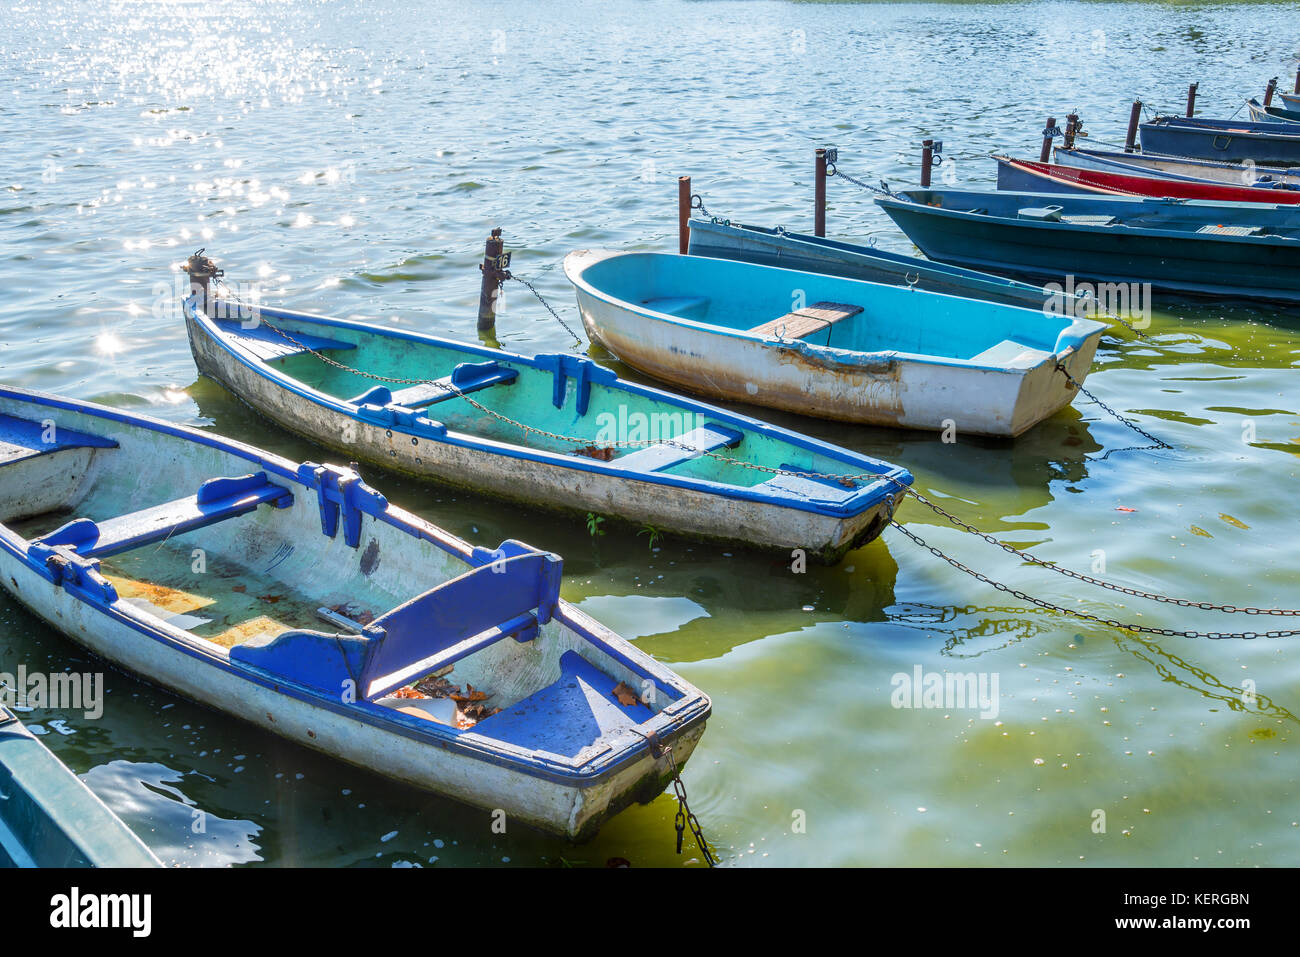 France boats holiday stock photos france boats holiday for Enghien les bains